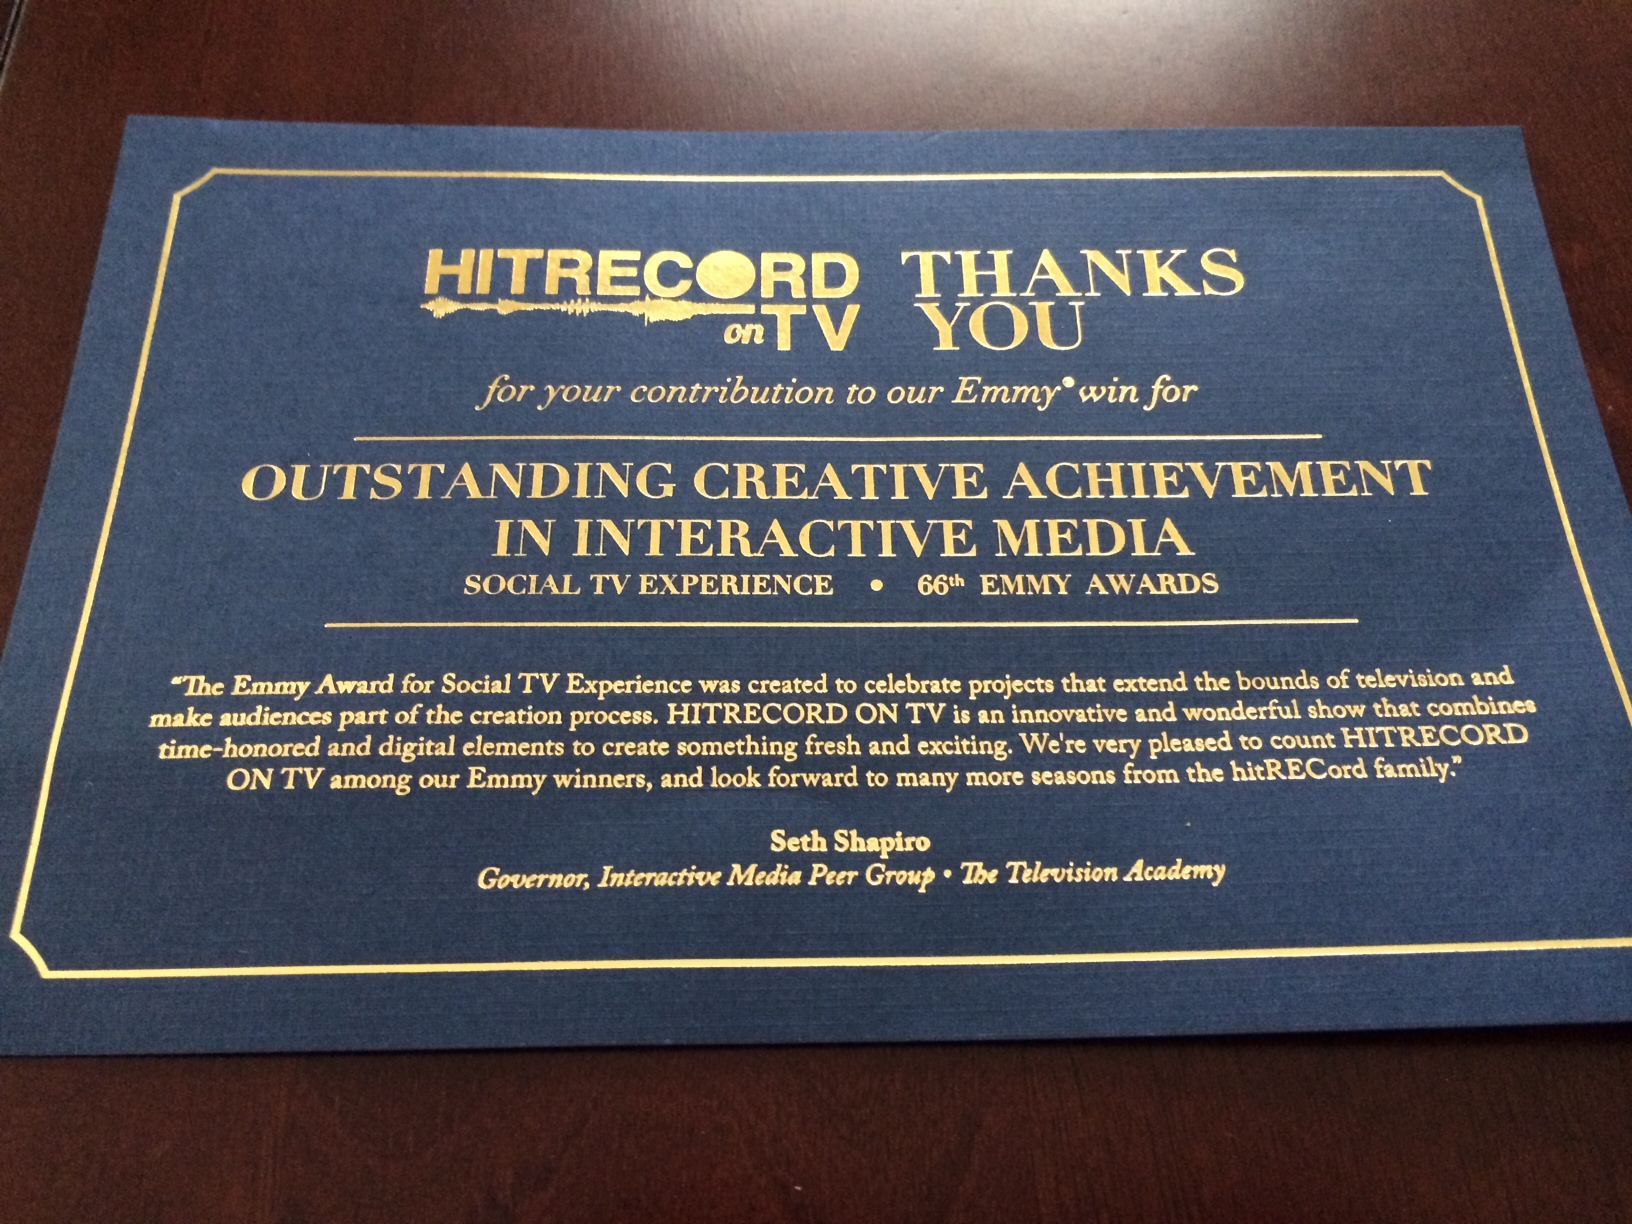 Recognition for TV contribution